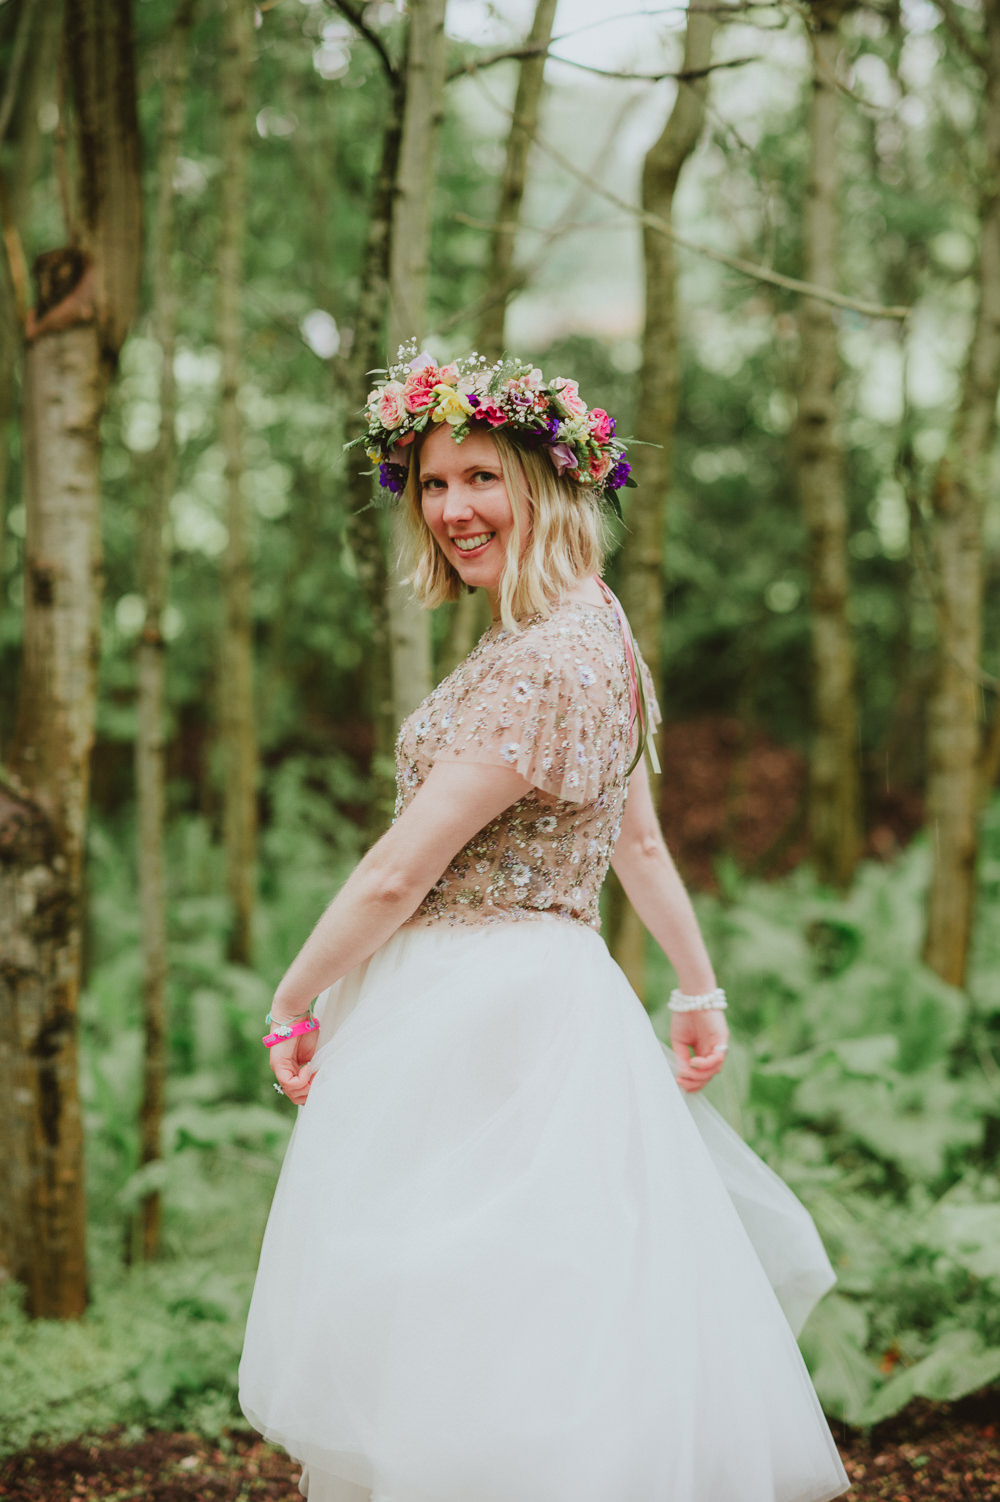 Tutu Bride Bridal Dress Gown Sleeves Emellished Sequin Pale Pink Embroidered Top Skirt Needle & Thread Flower Crown Plush Tents Glamping Wedding Big Bouquet Photography